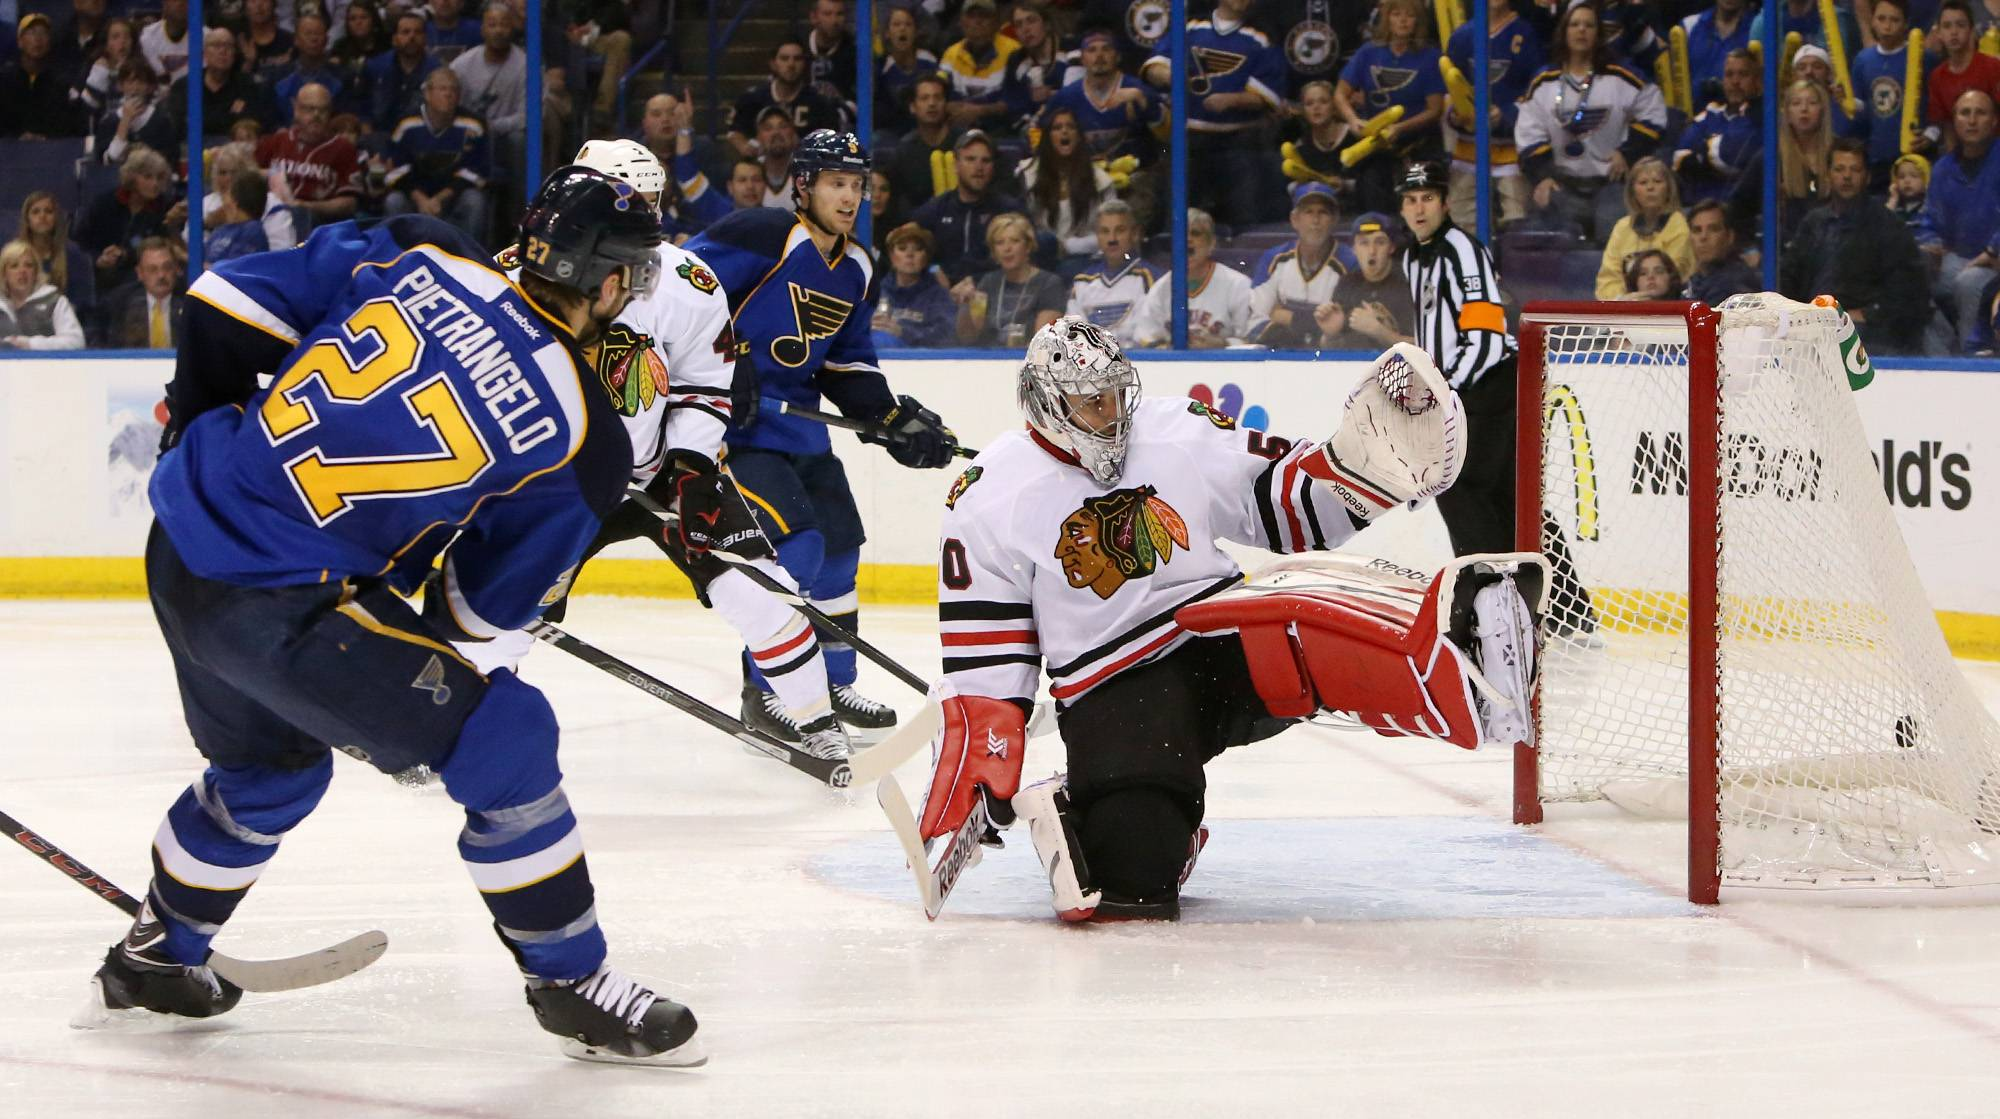 St. Louis Blues defenseman Alex Pietrangelo scores past Chicago Blackhawks goaltender Corey Crawford to tie the game in third period action.